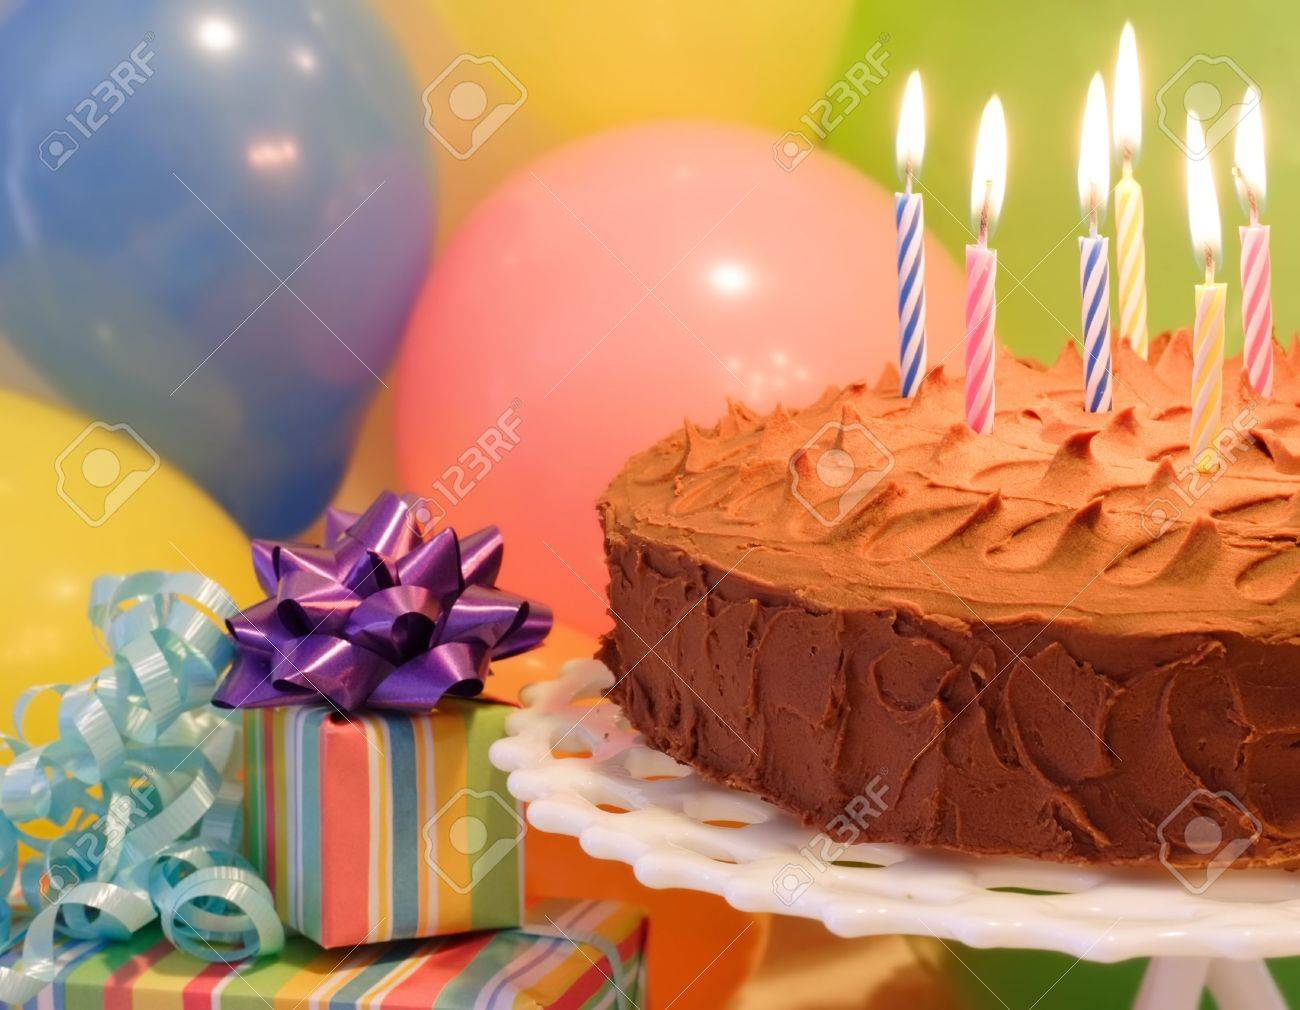 A Birthday Cake With Lit Candles Balloons And Presents Stock Photo